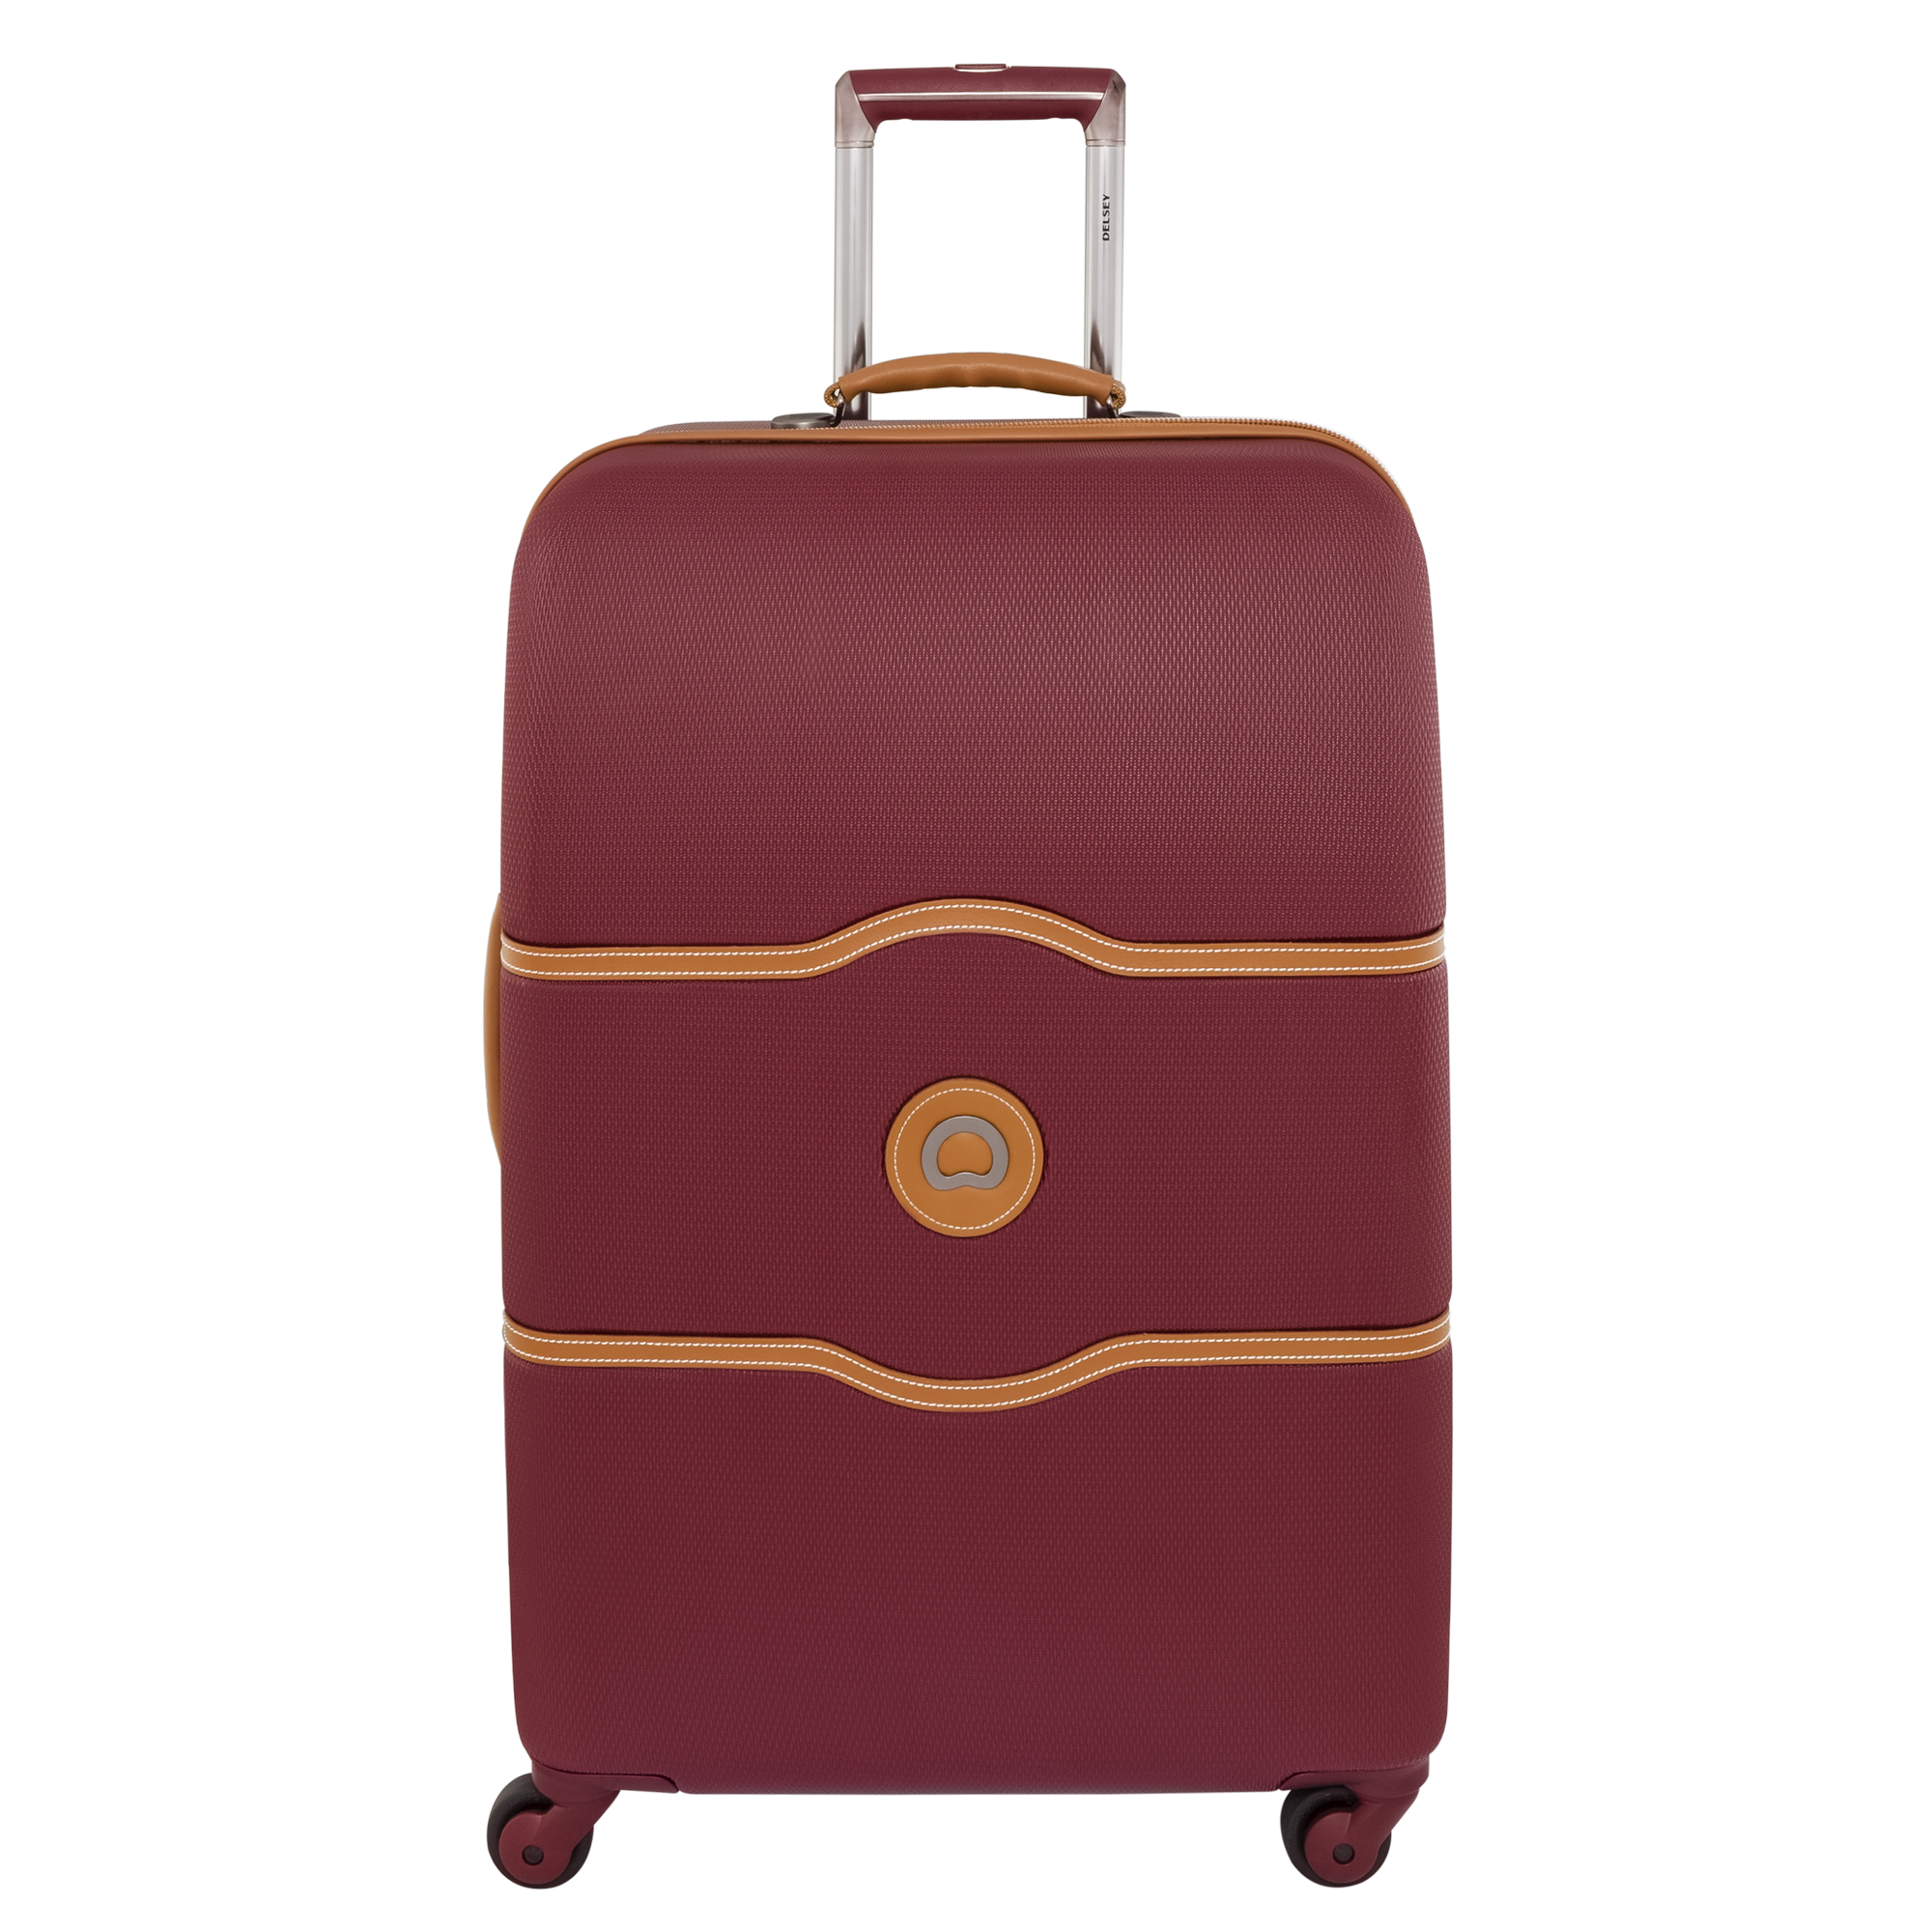 DELSEY CHATELET #luggage #travel #style #burgundy | viajes ...